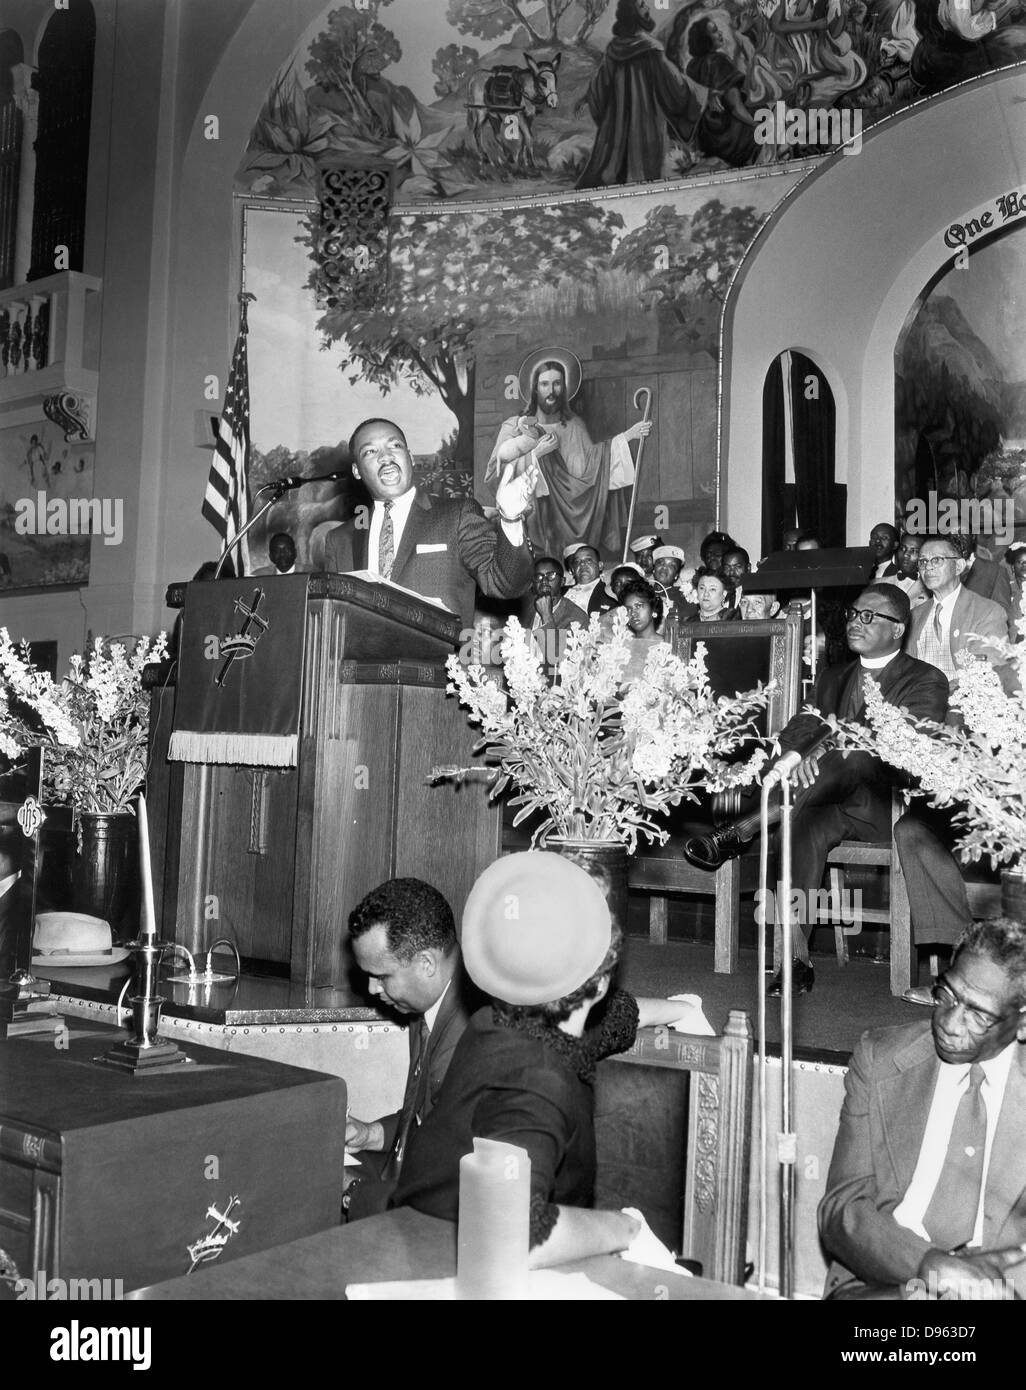 Martin Luther King  Jnr (1929-1968). American black civil rights campaigner in the pulpit. Assassinated, supposedly - Stock Image